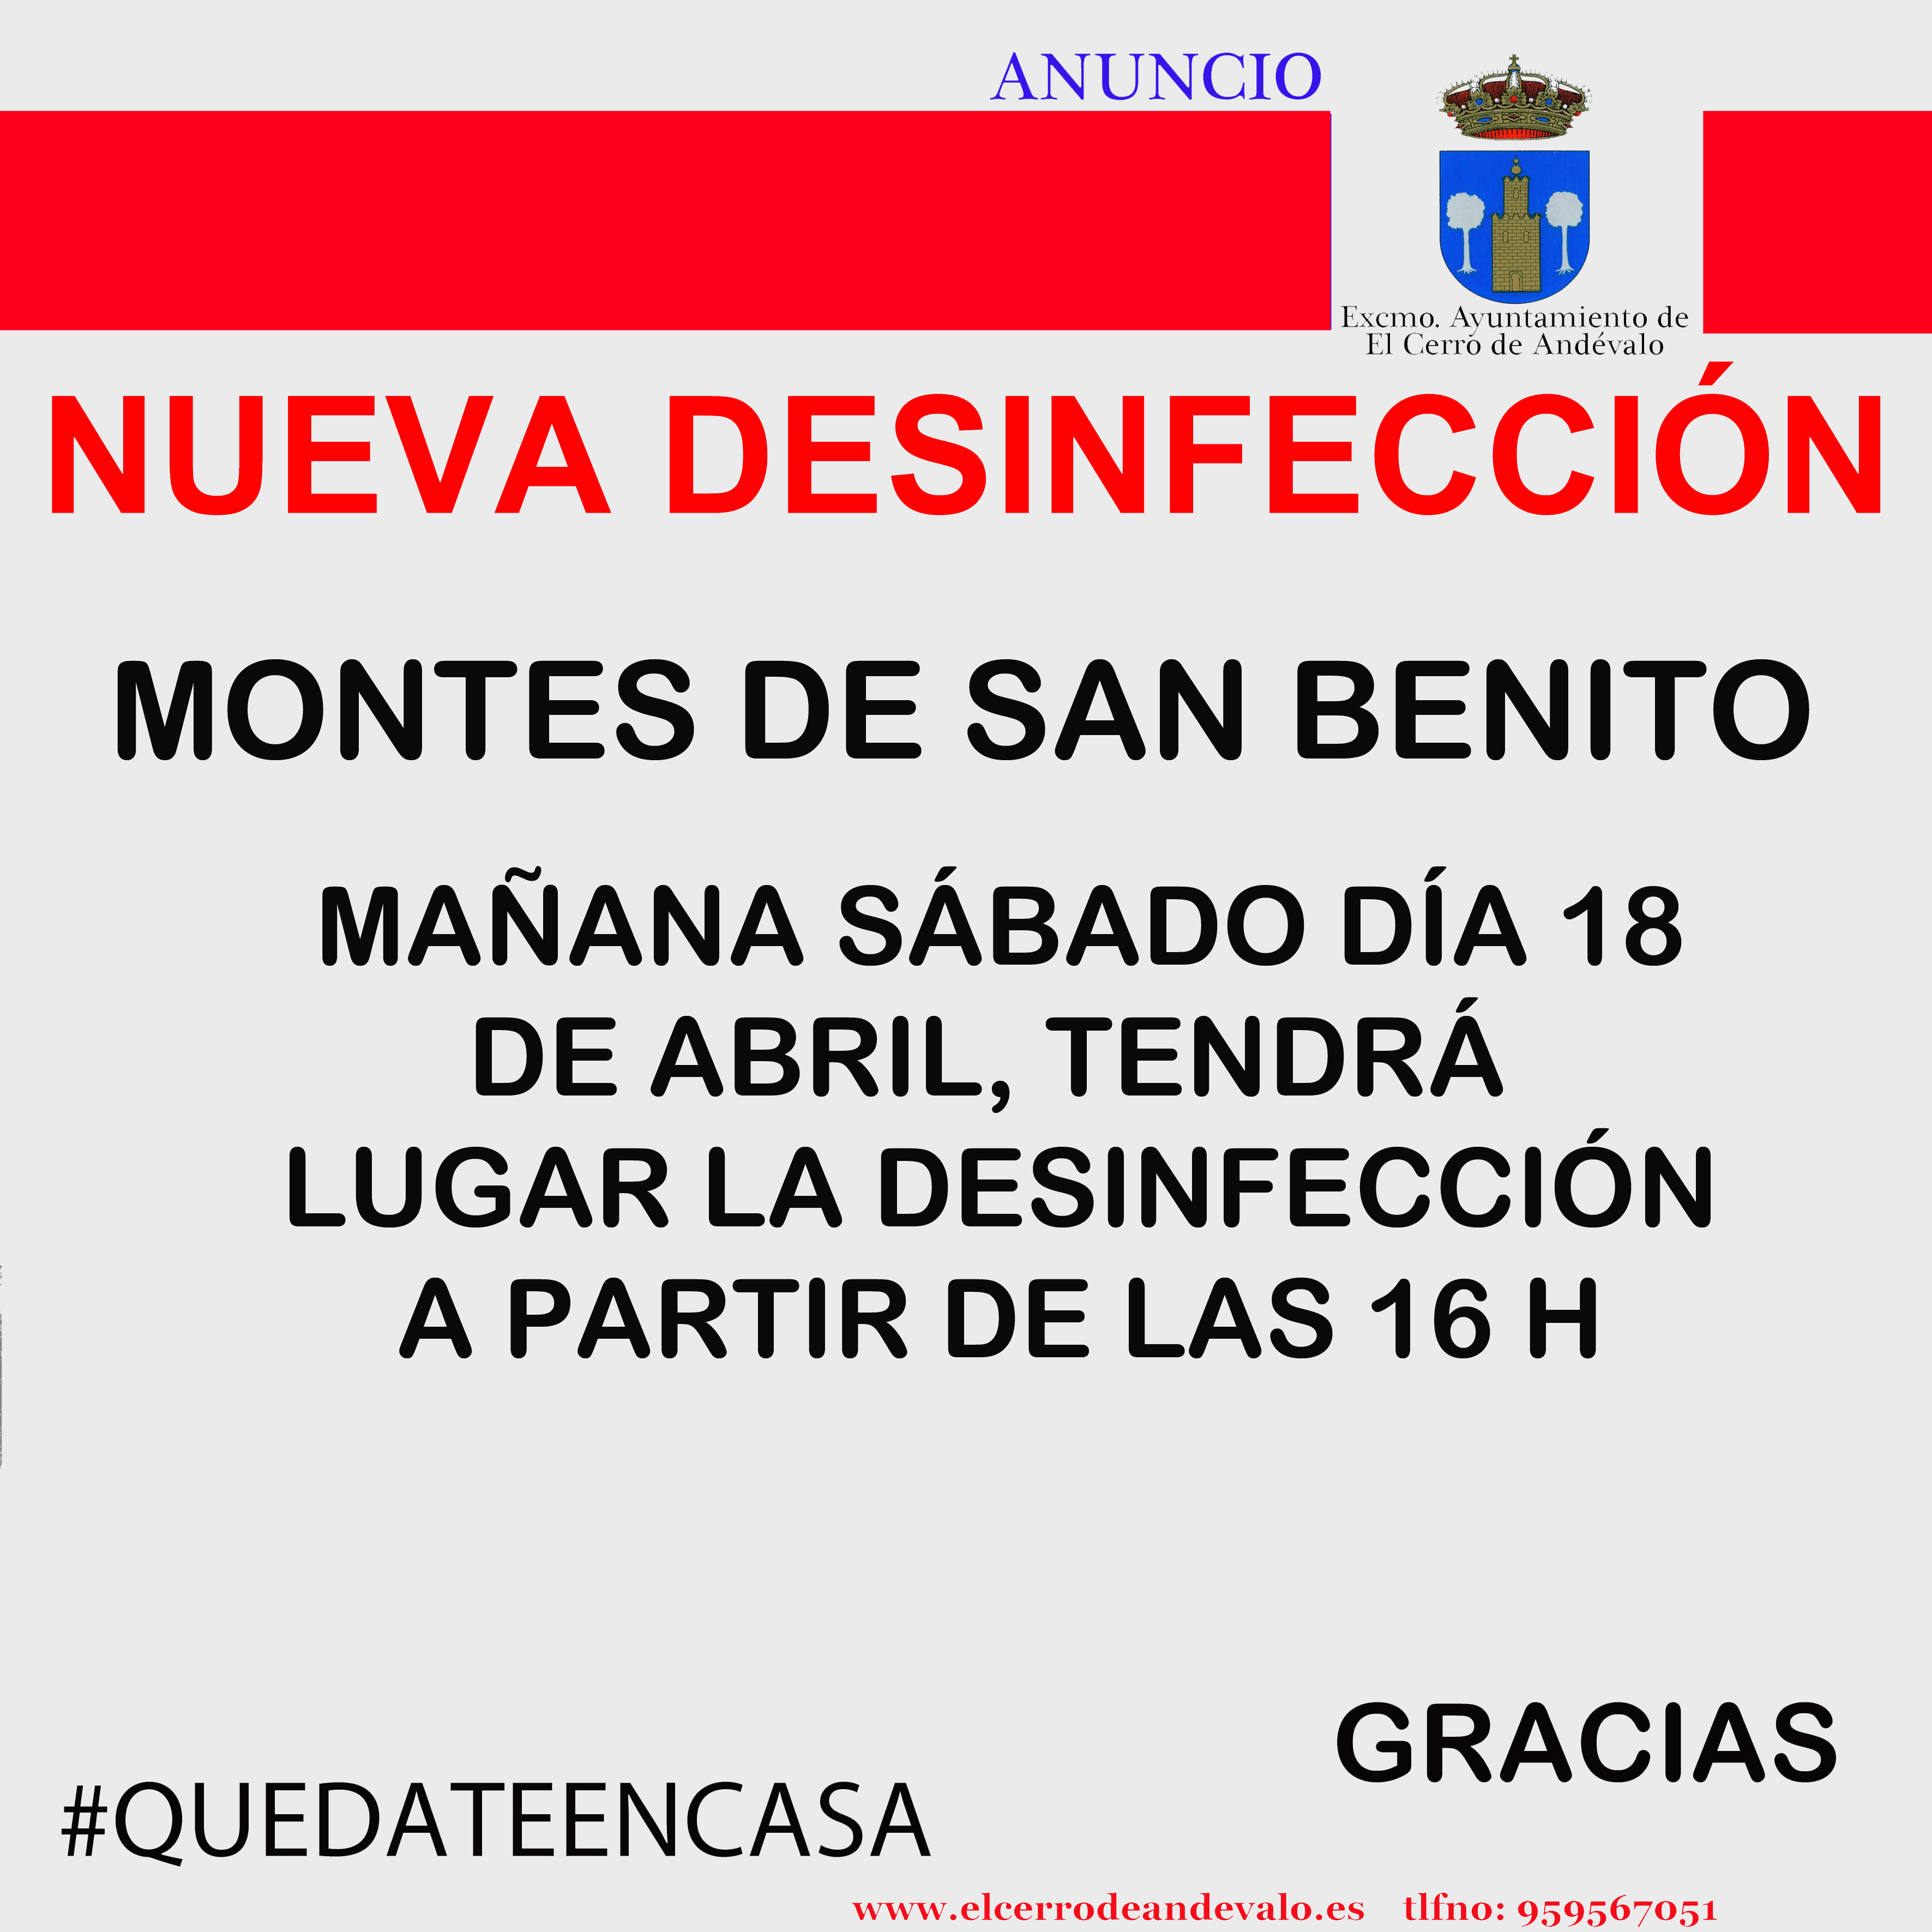 DESINFECCION MONTES 18 DE ABRIL